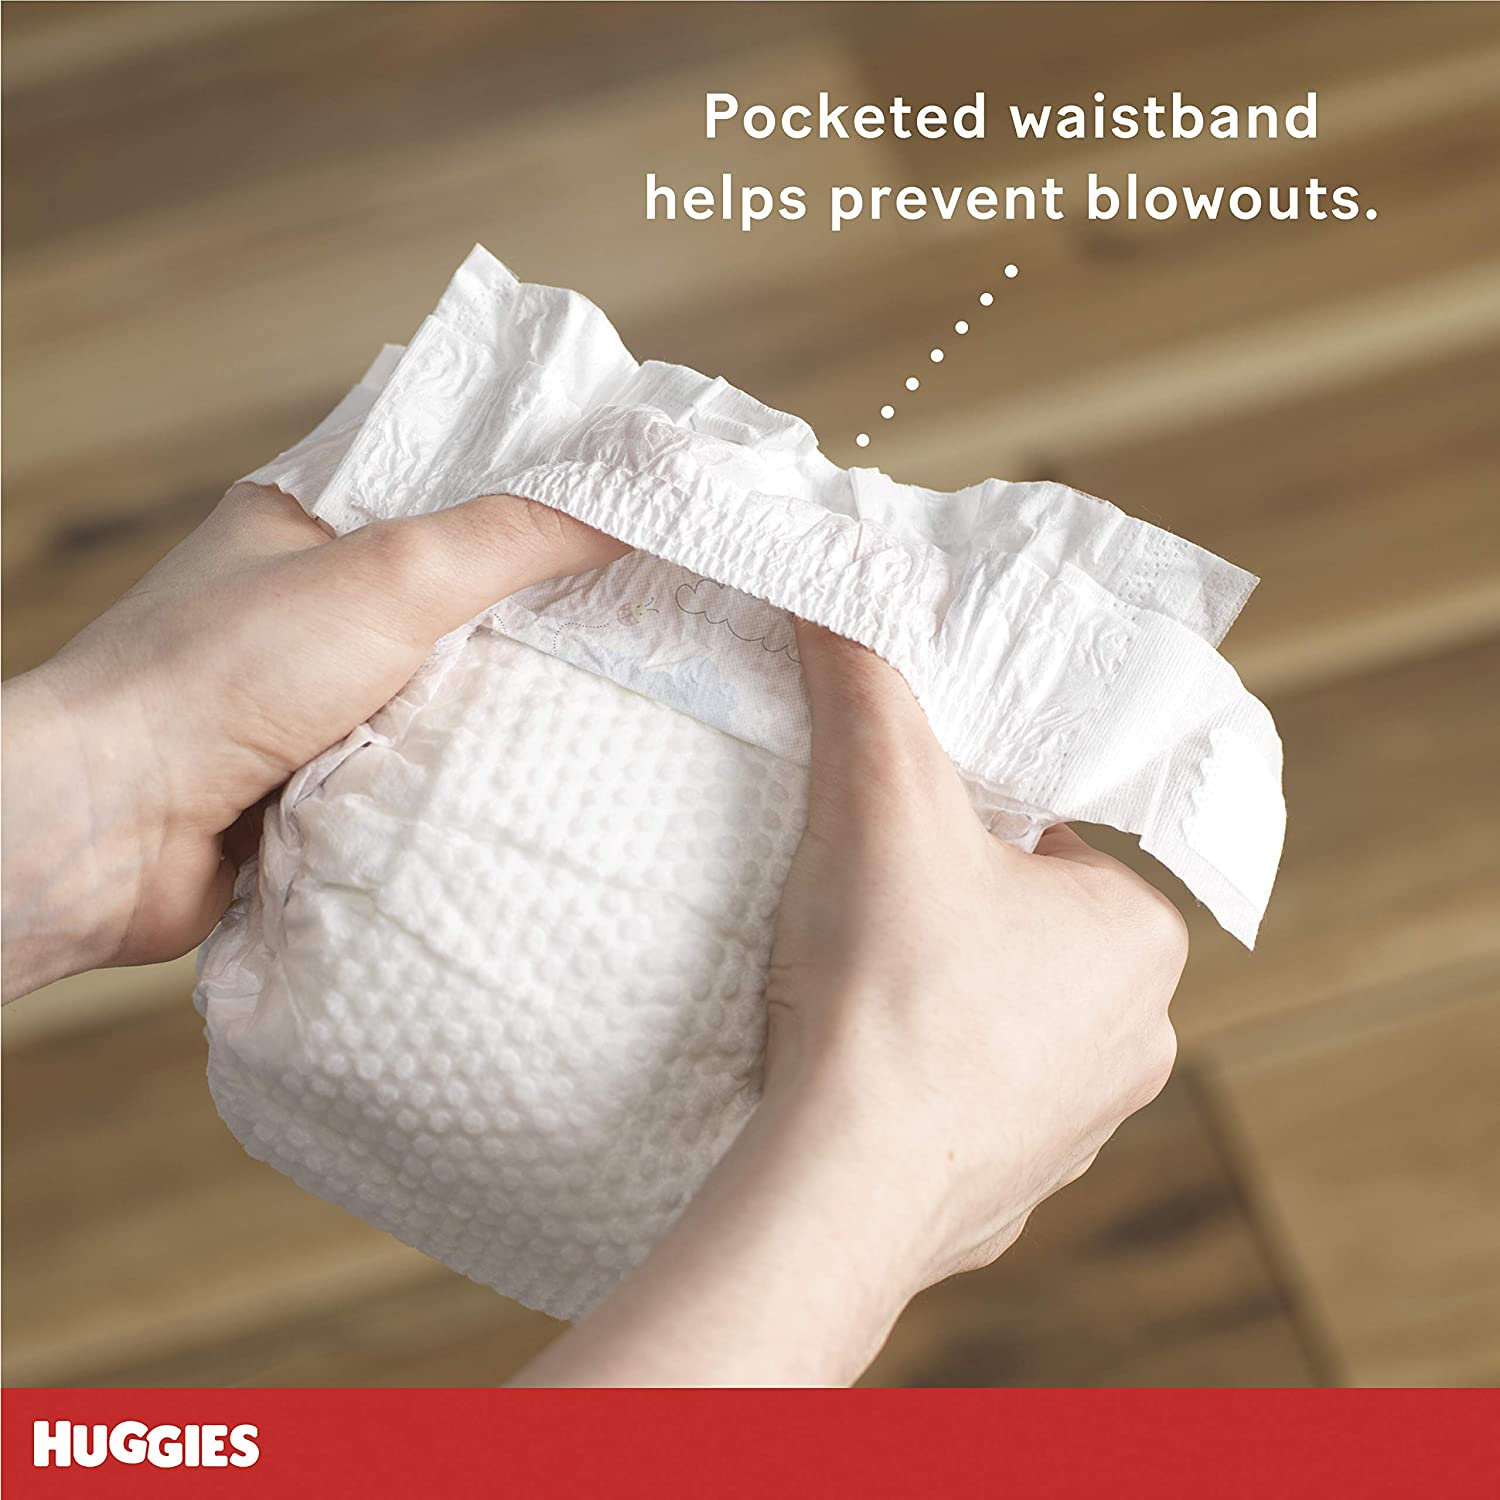 Diapers Size 6 One Month Supply 96 count 96ct Huggies Little Snugglers Disposable Baby Diapers